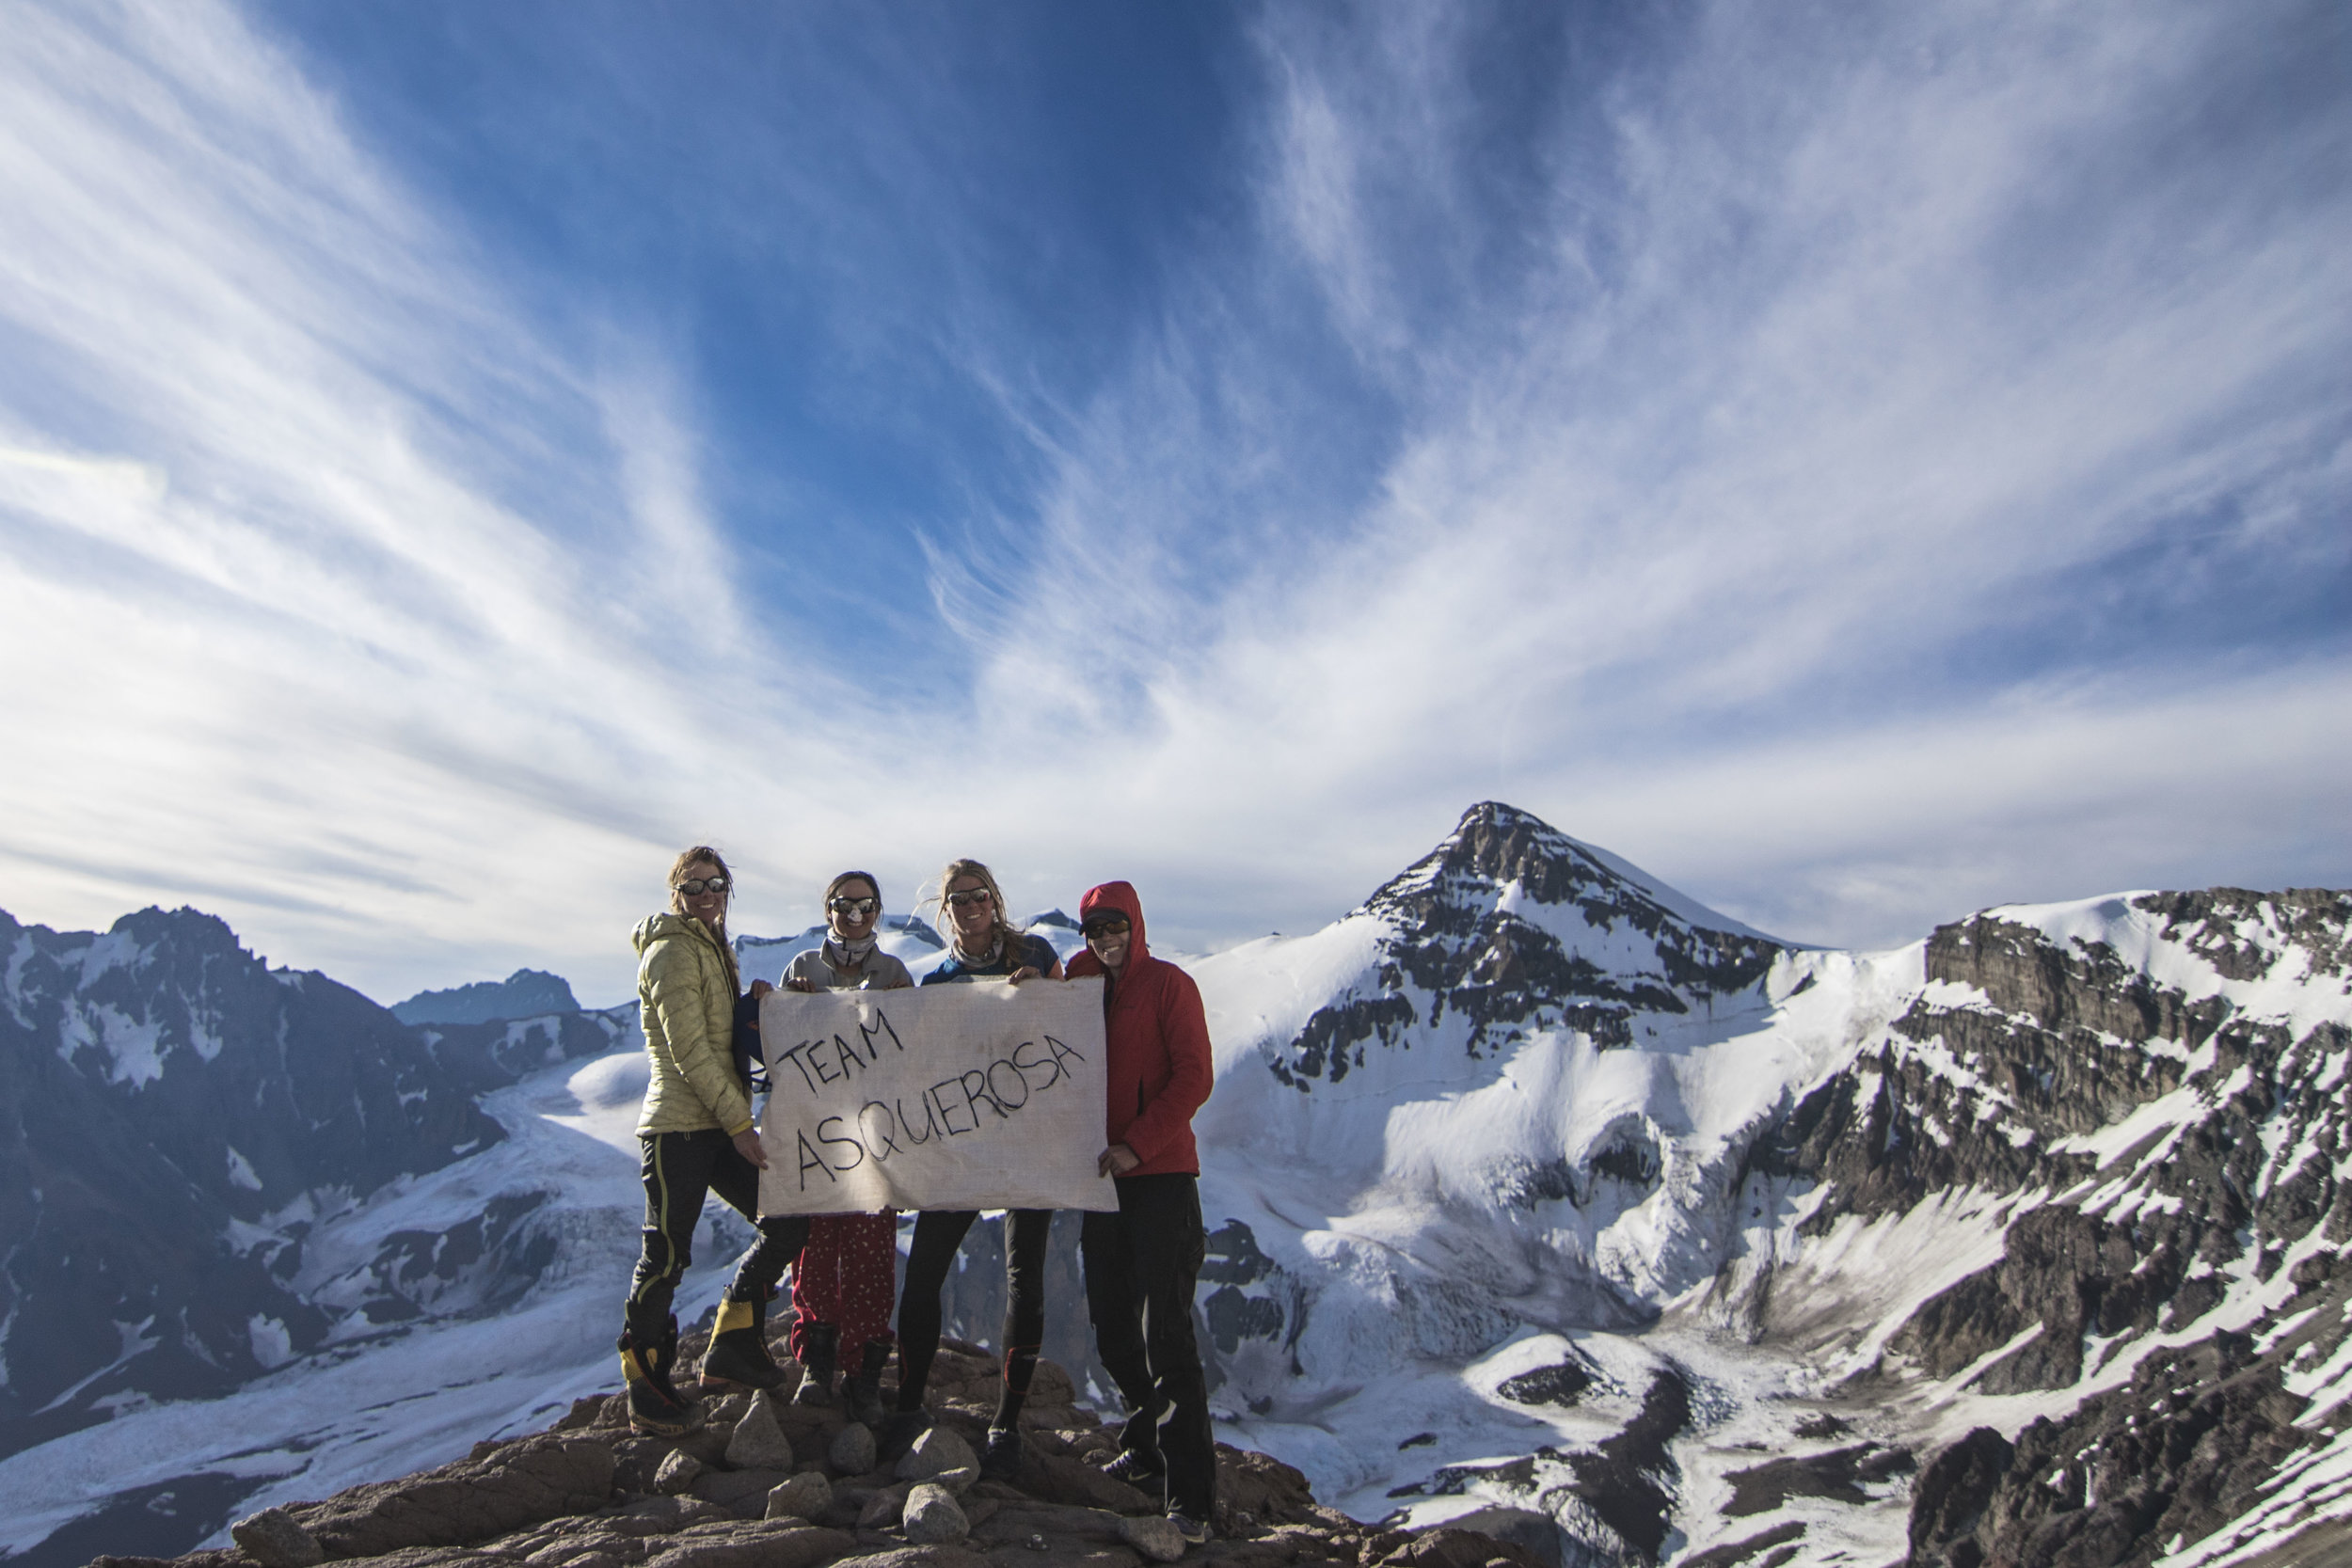 The team in full force at Camp Canada (16,500ft)